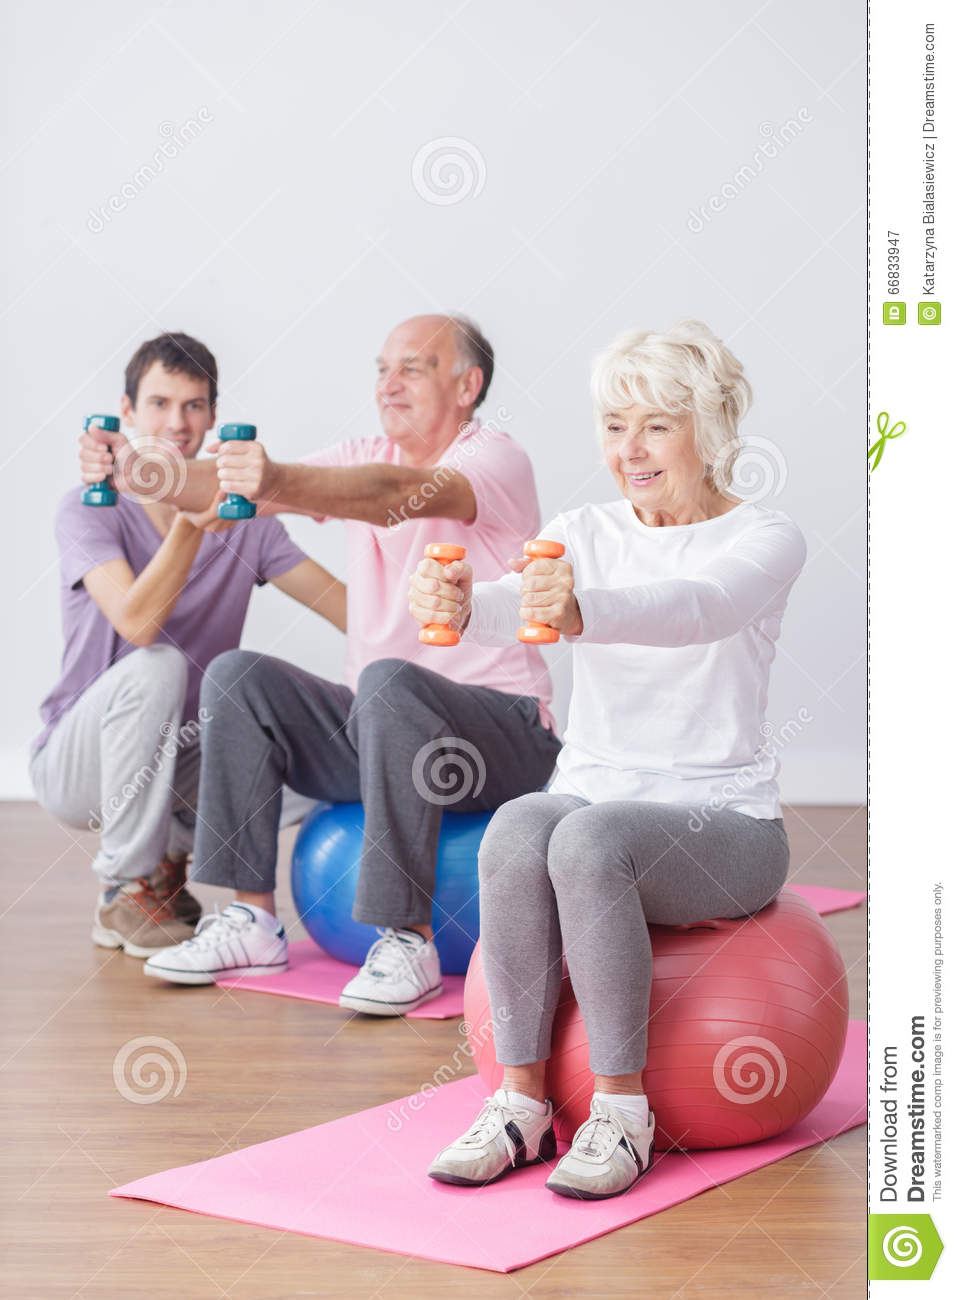 Seniors and active life